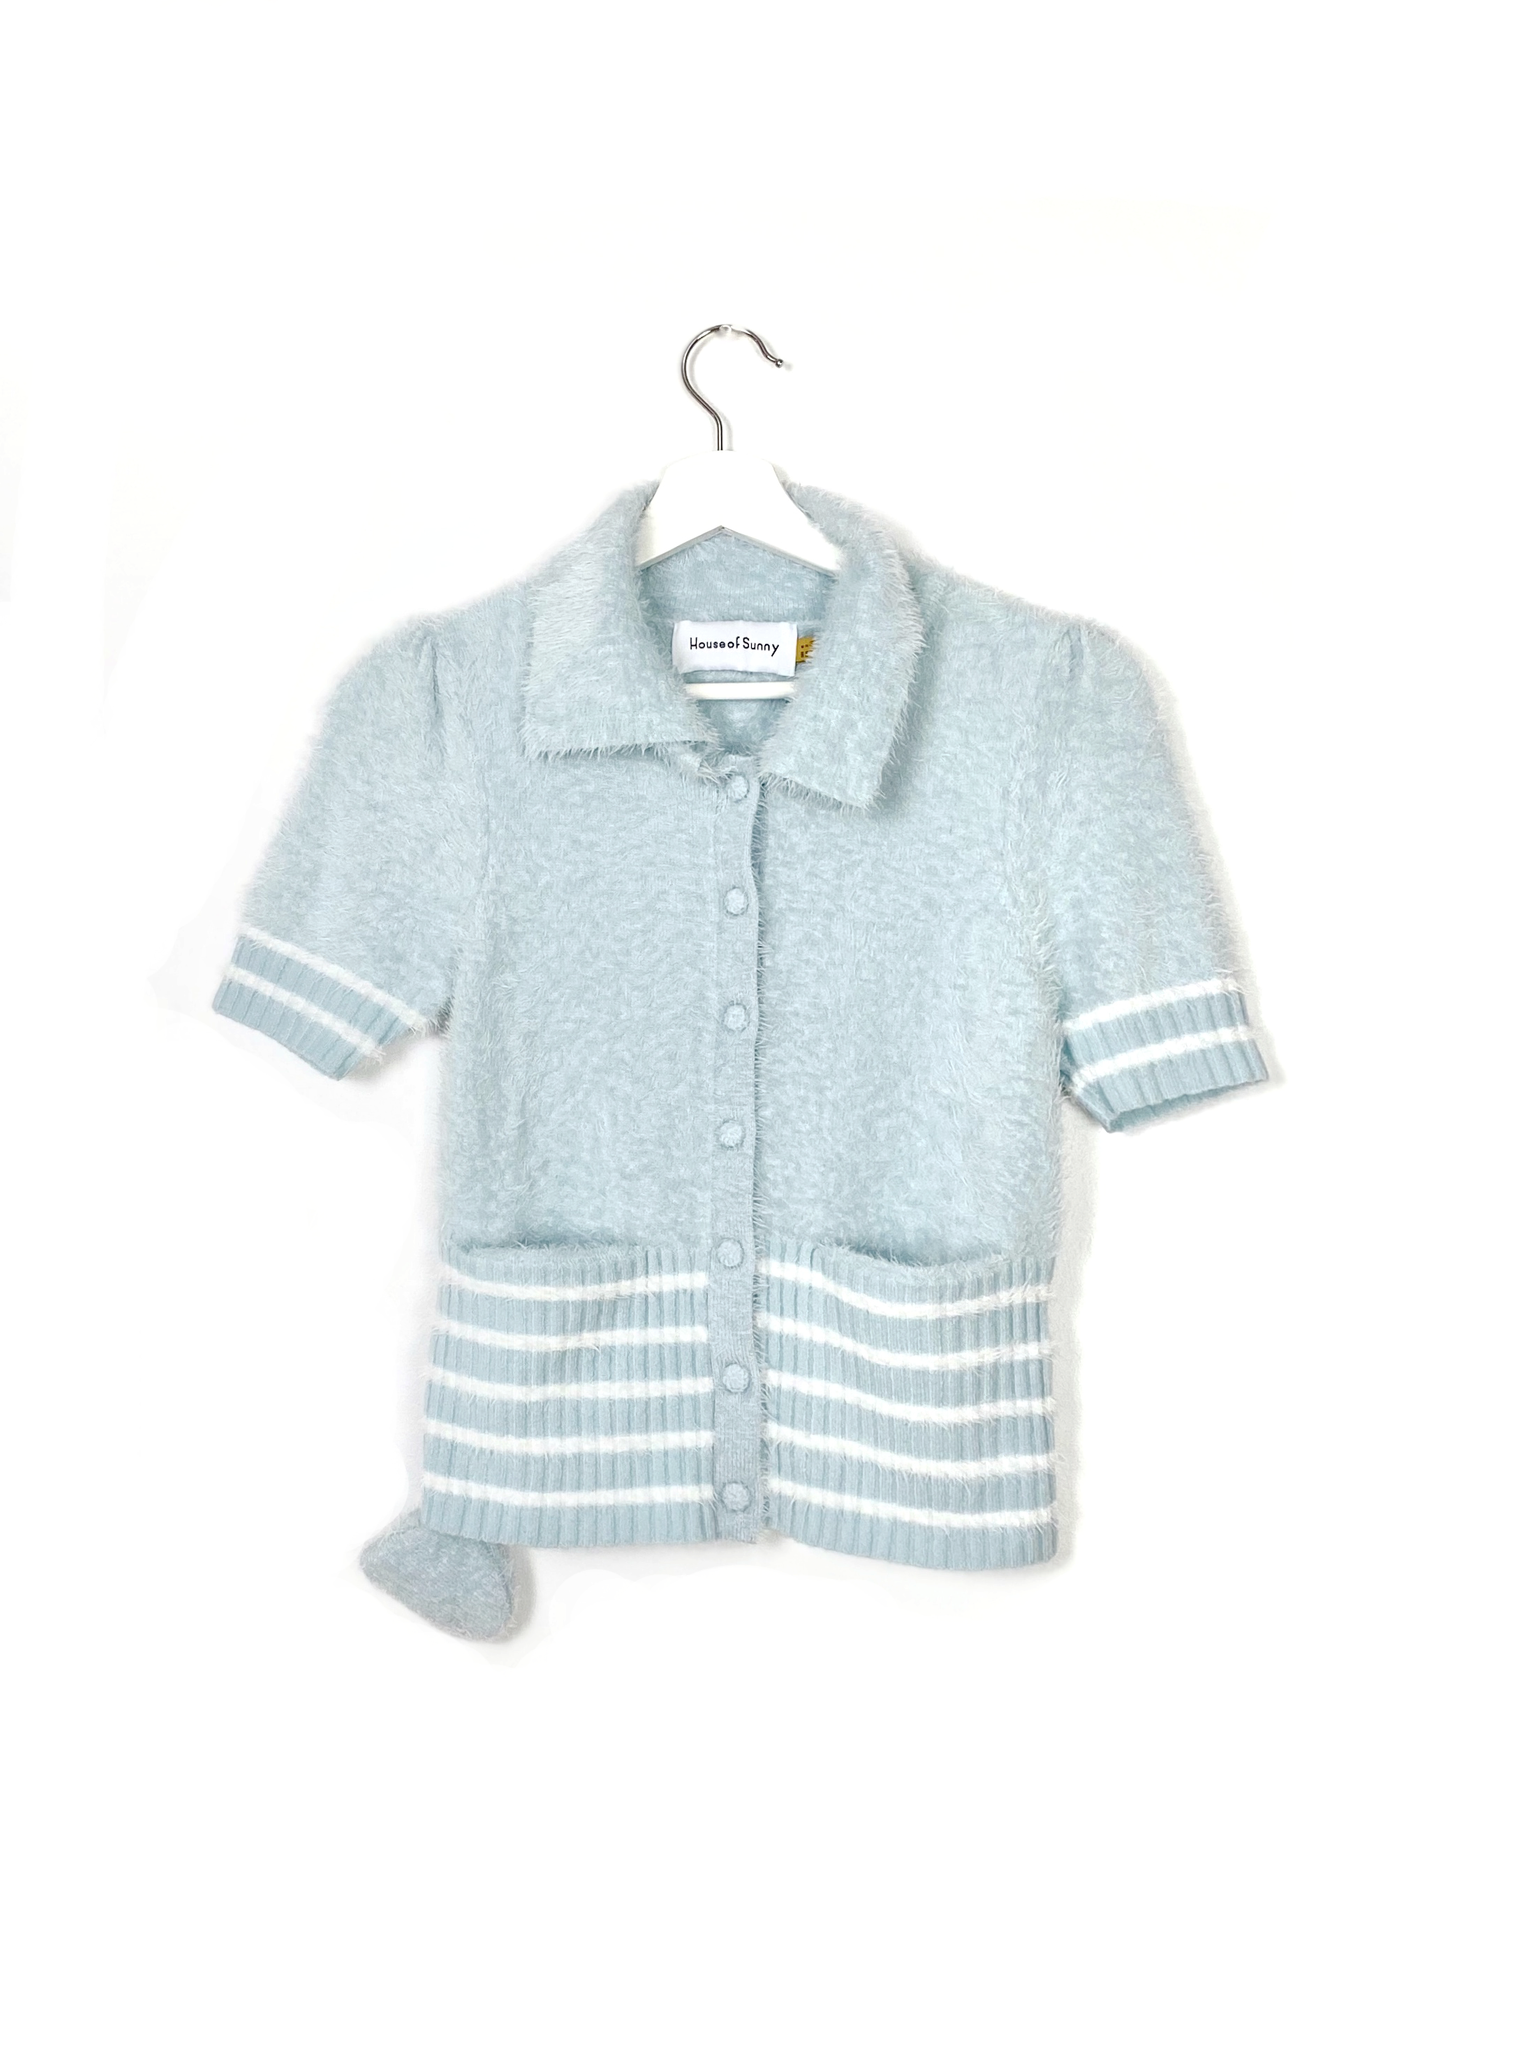 House of Sunny Clearwater Winona Knit